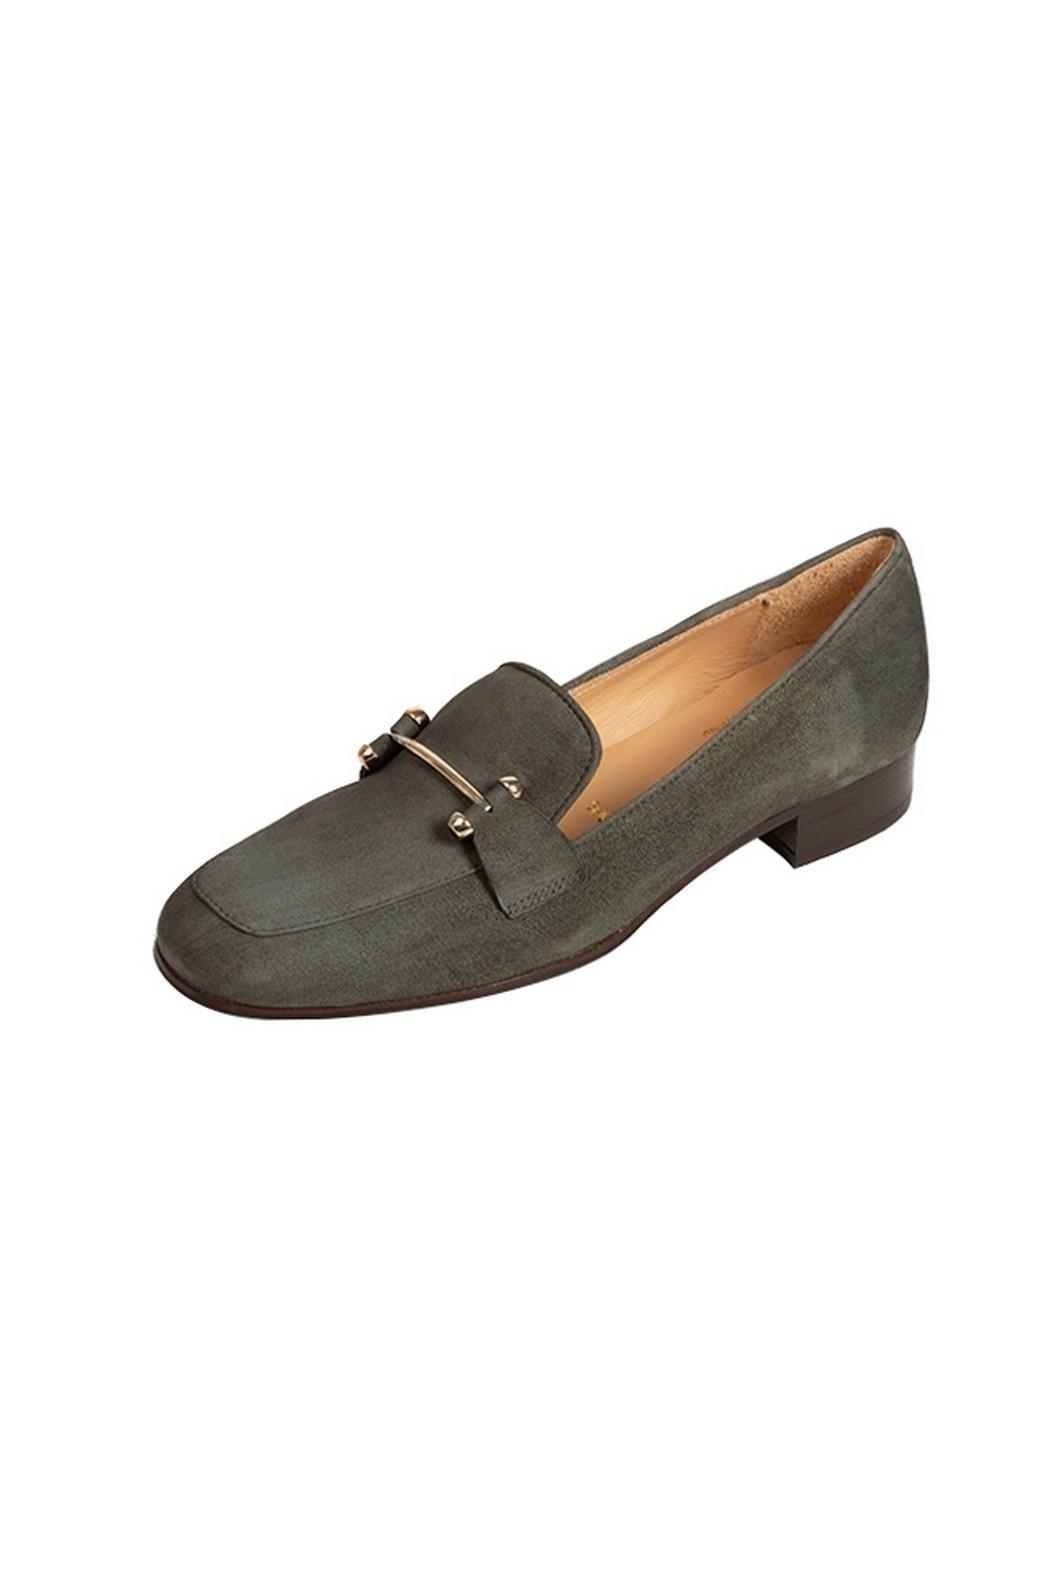 Pascucci Forest-Green Suede Loafers - Front Full Image